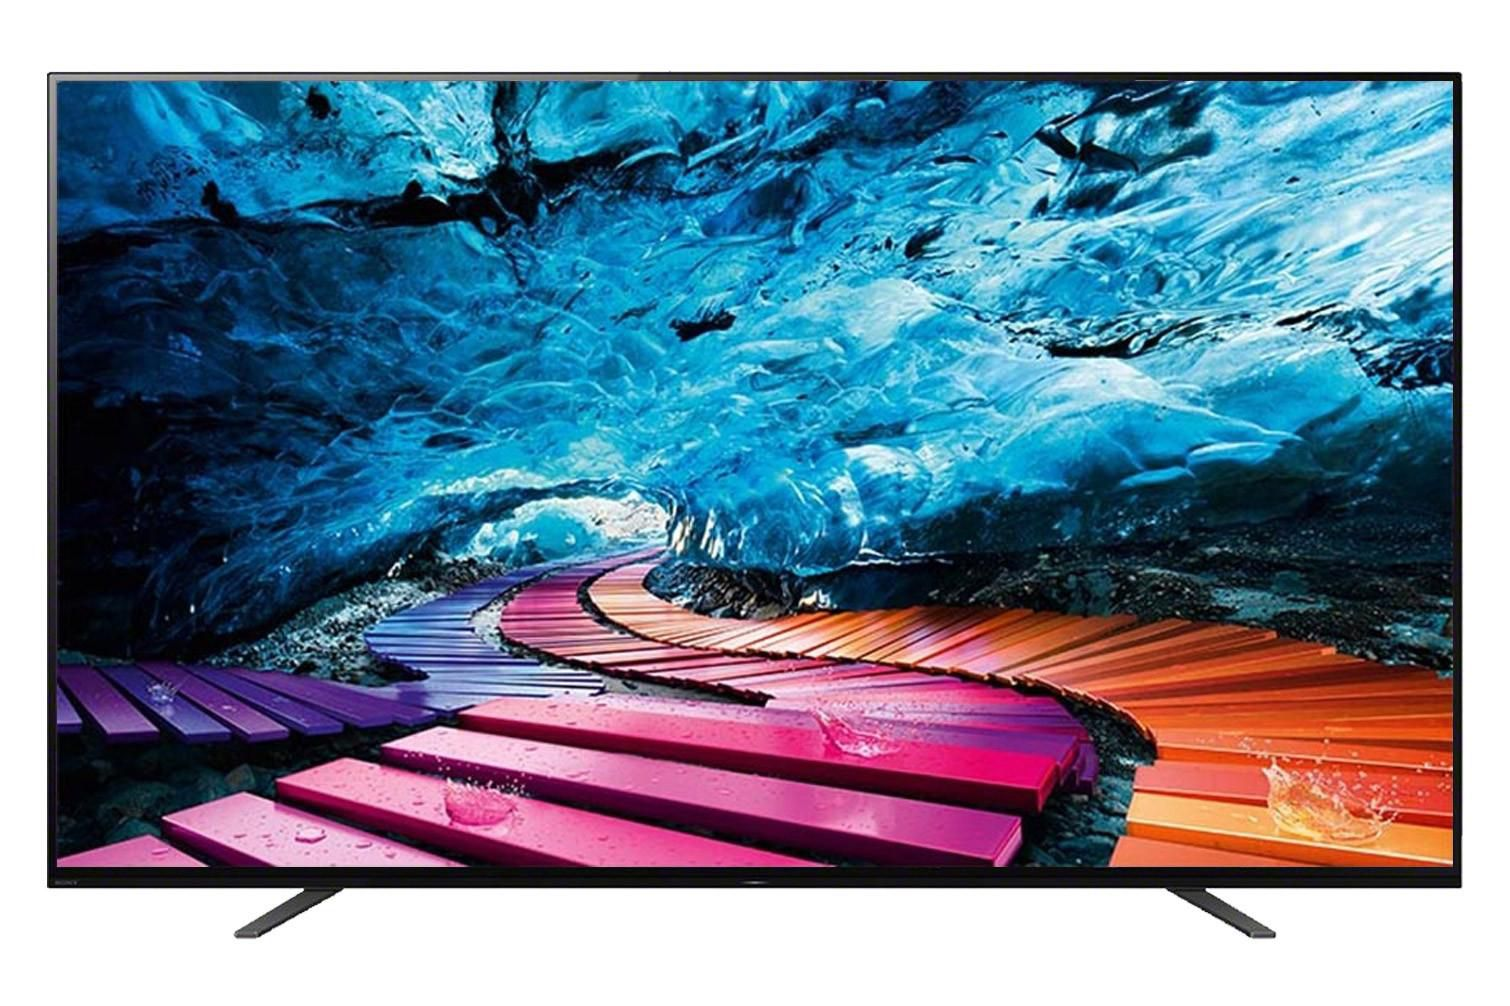 OLED Tivi 4k Sony 65 inch 65A8H Android TV